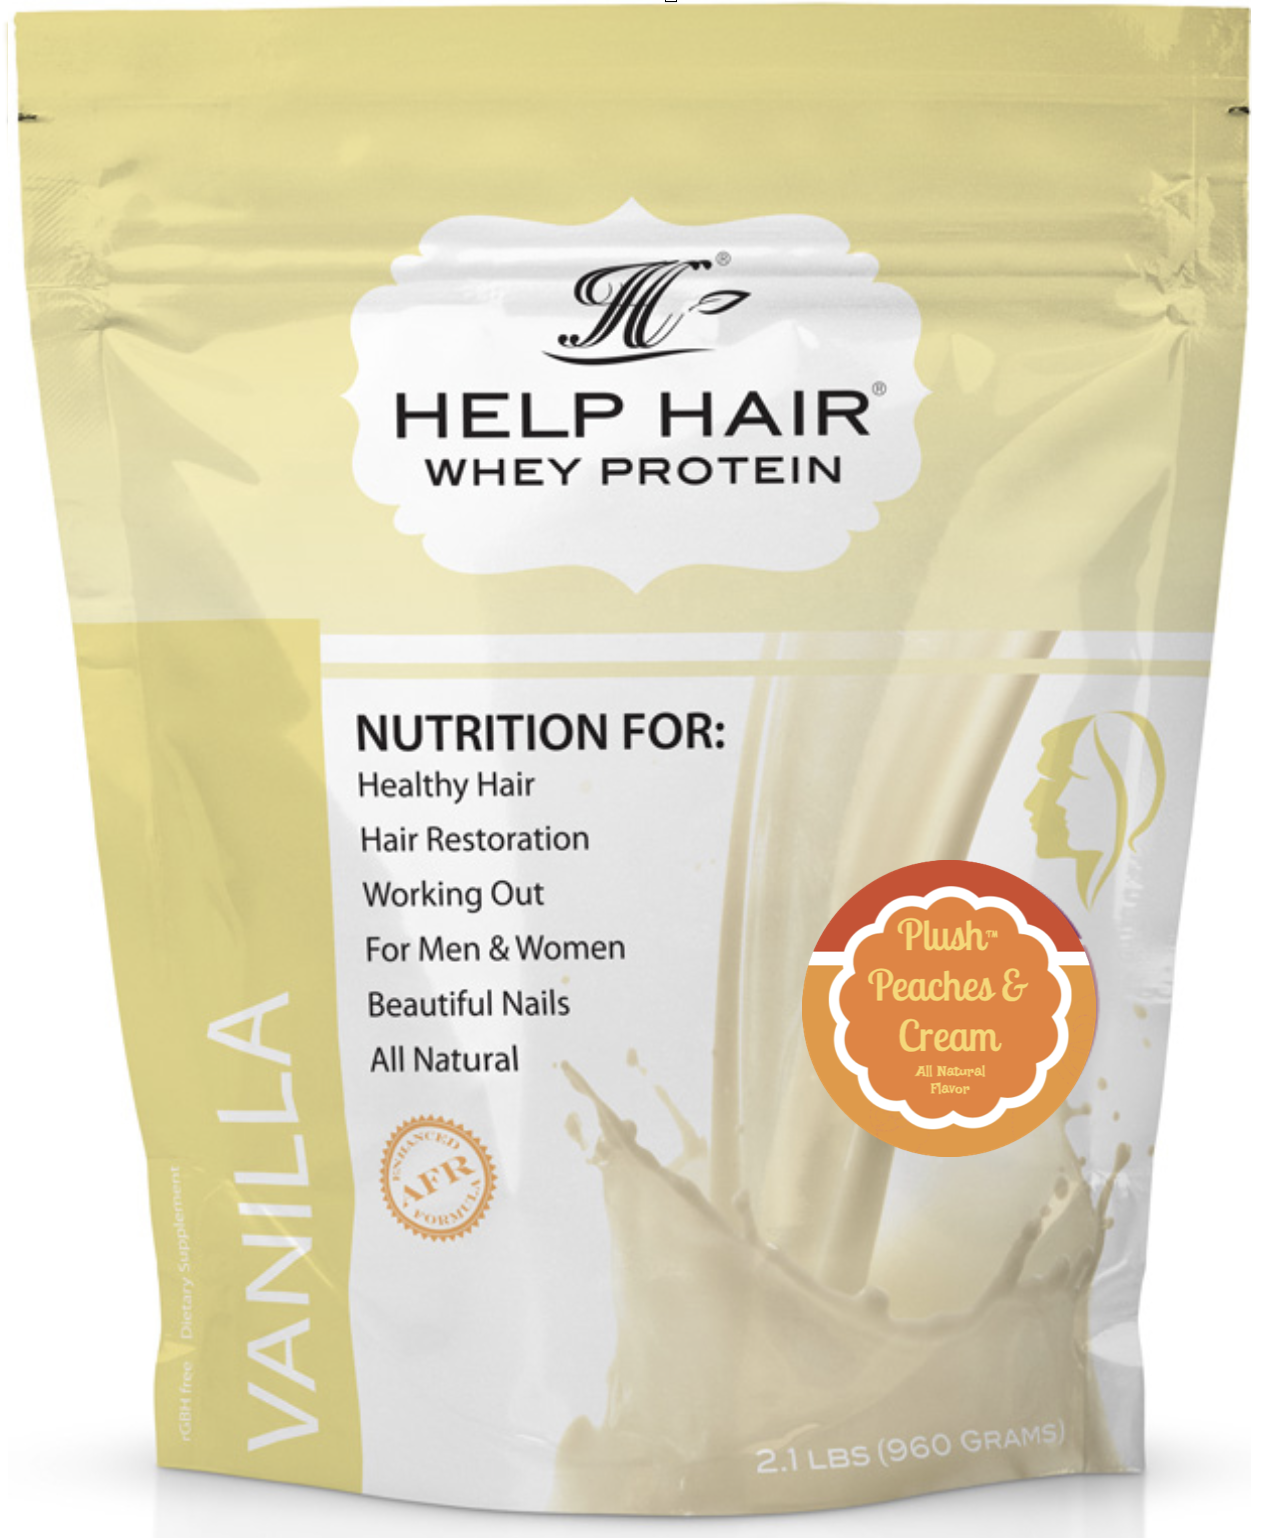 help-hair-shake-plush-peaches-and-cream.-delicious-for-your-hair-.png